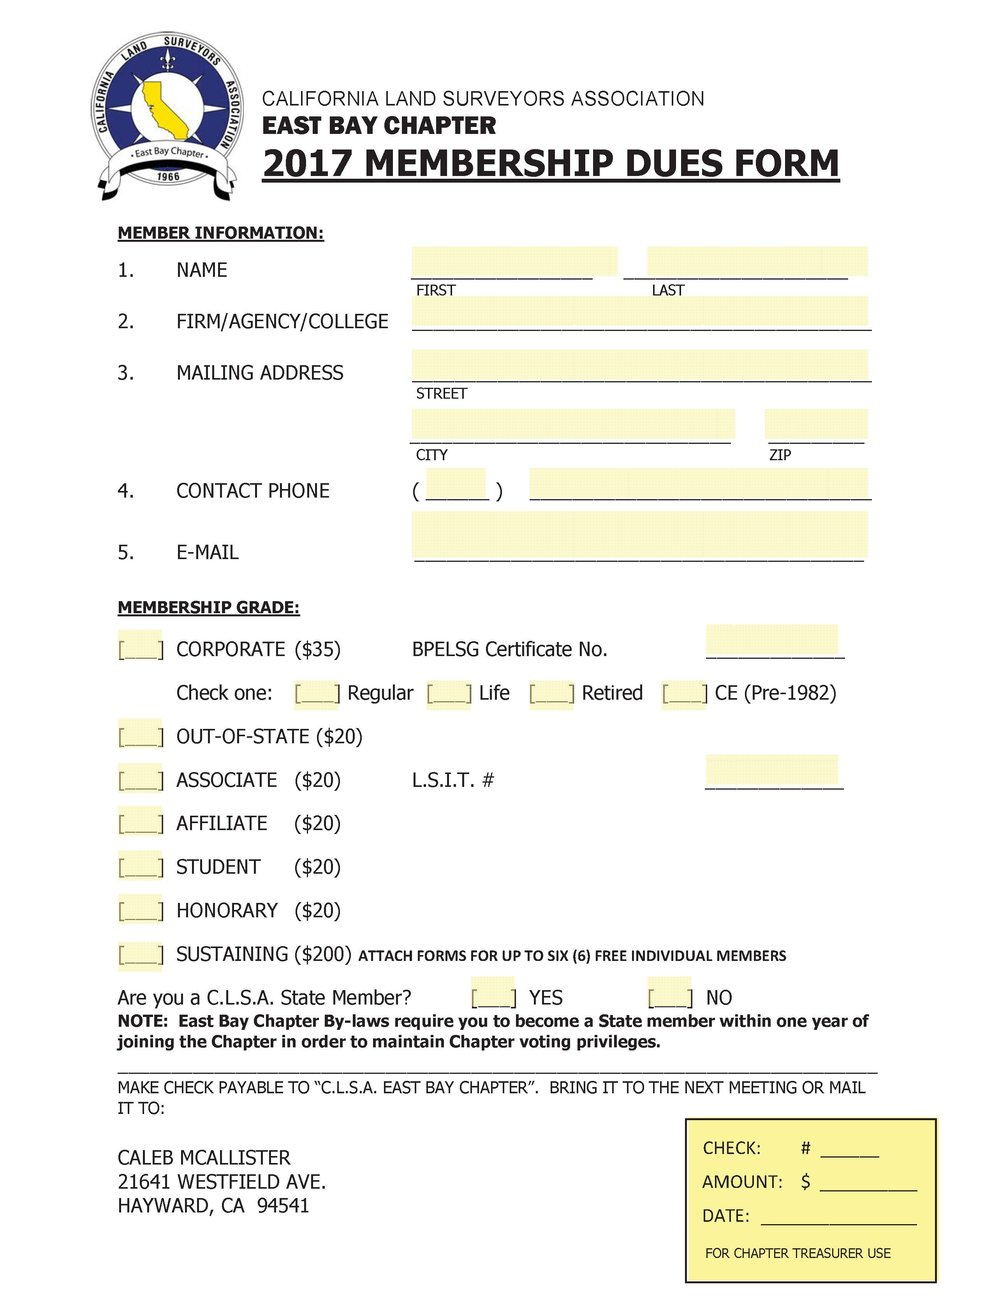 2017_CLSA_East_Bay_Chapter_Membership_Form2.jpg